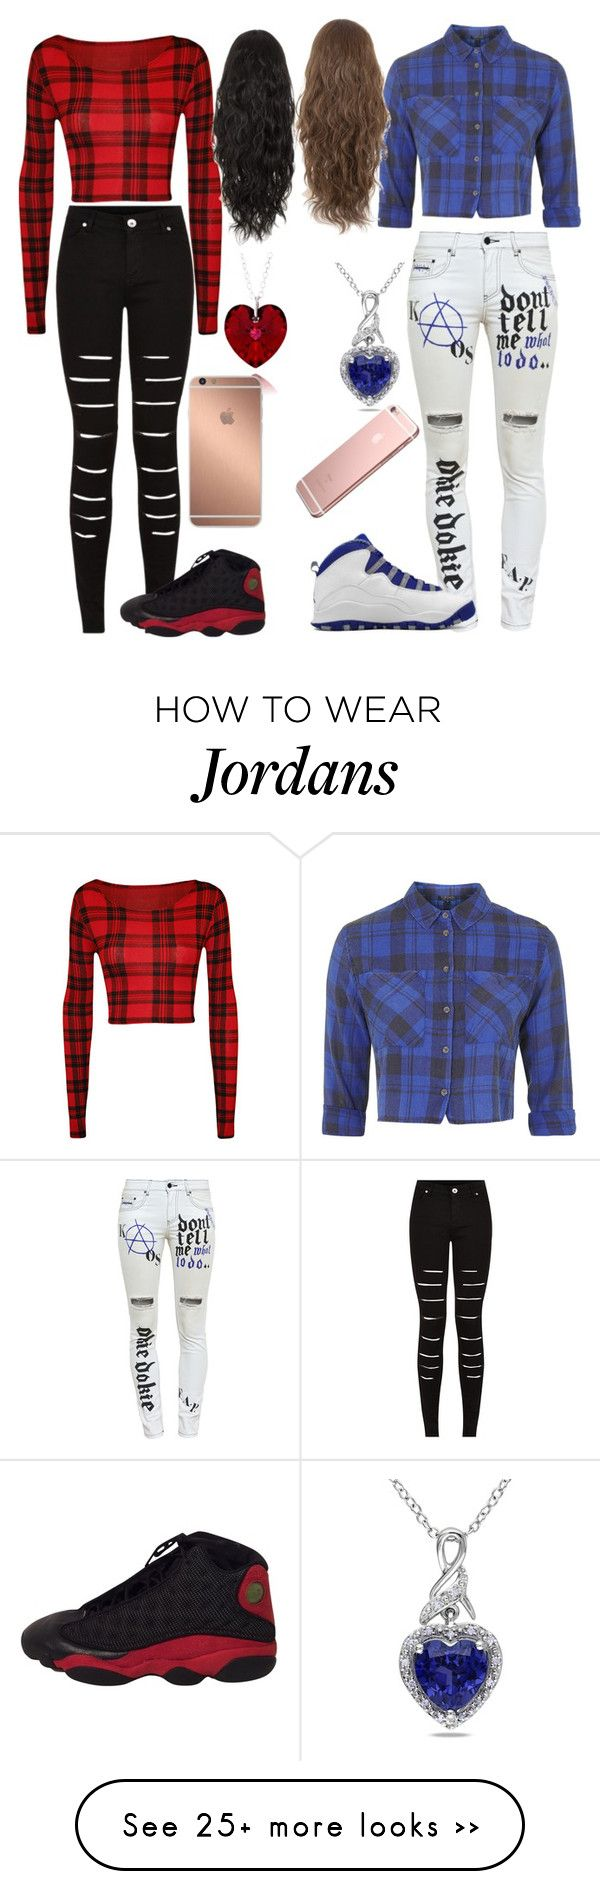 """Meeting The Magcon boys"" by kylayiah53 on Polyvore featuring moda, Filles à papa, Topshop, WearAll, Ice y Mura"